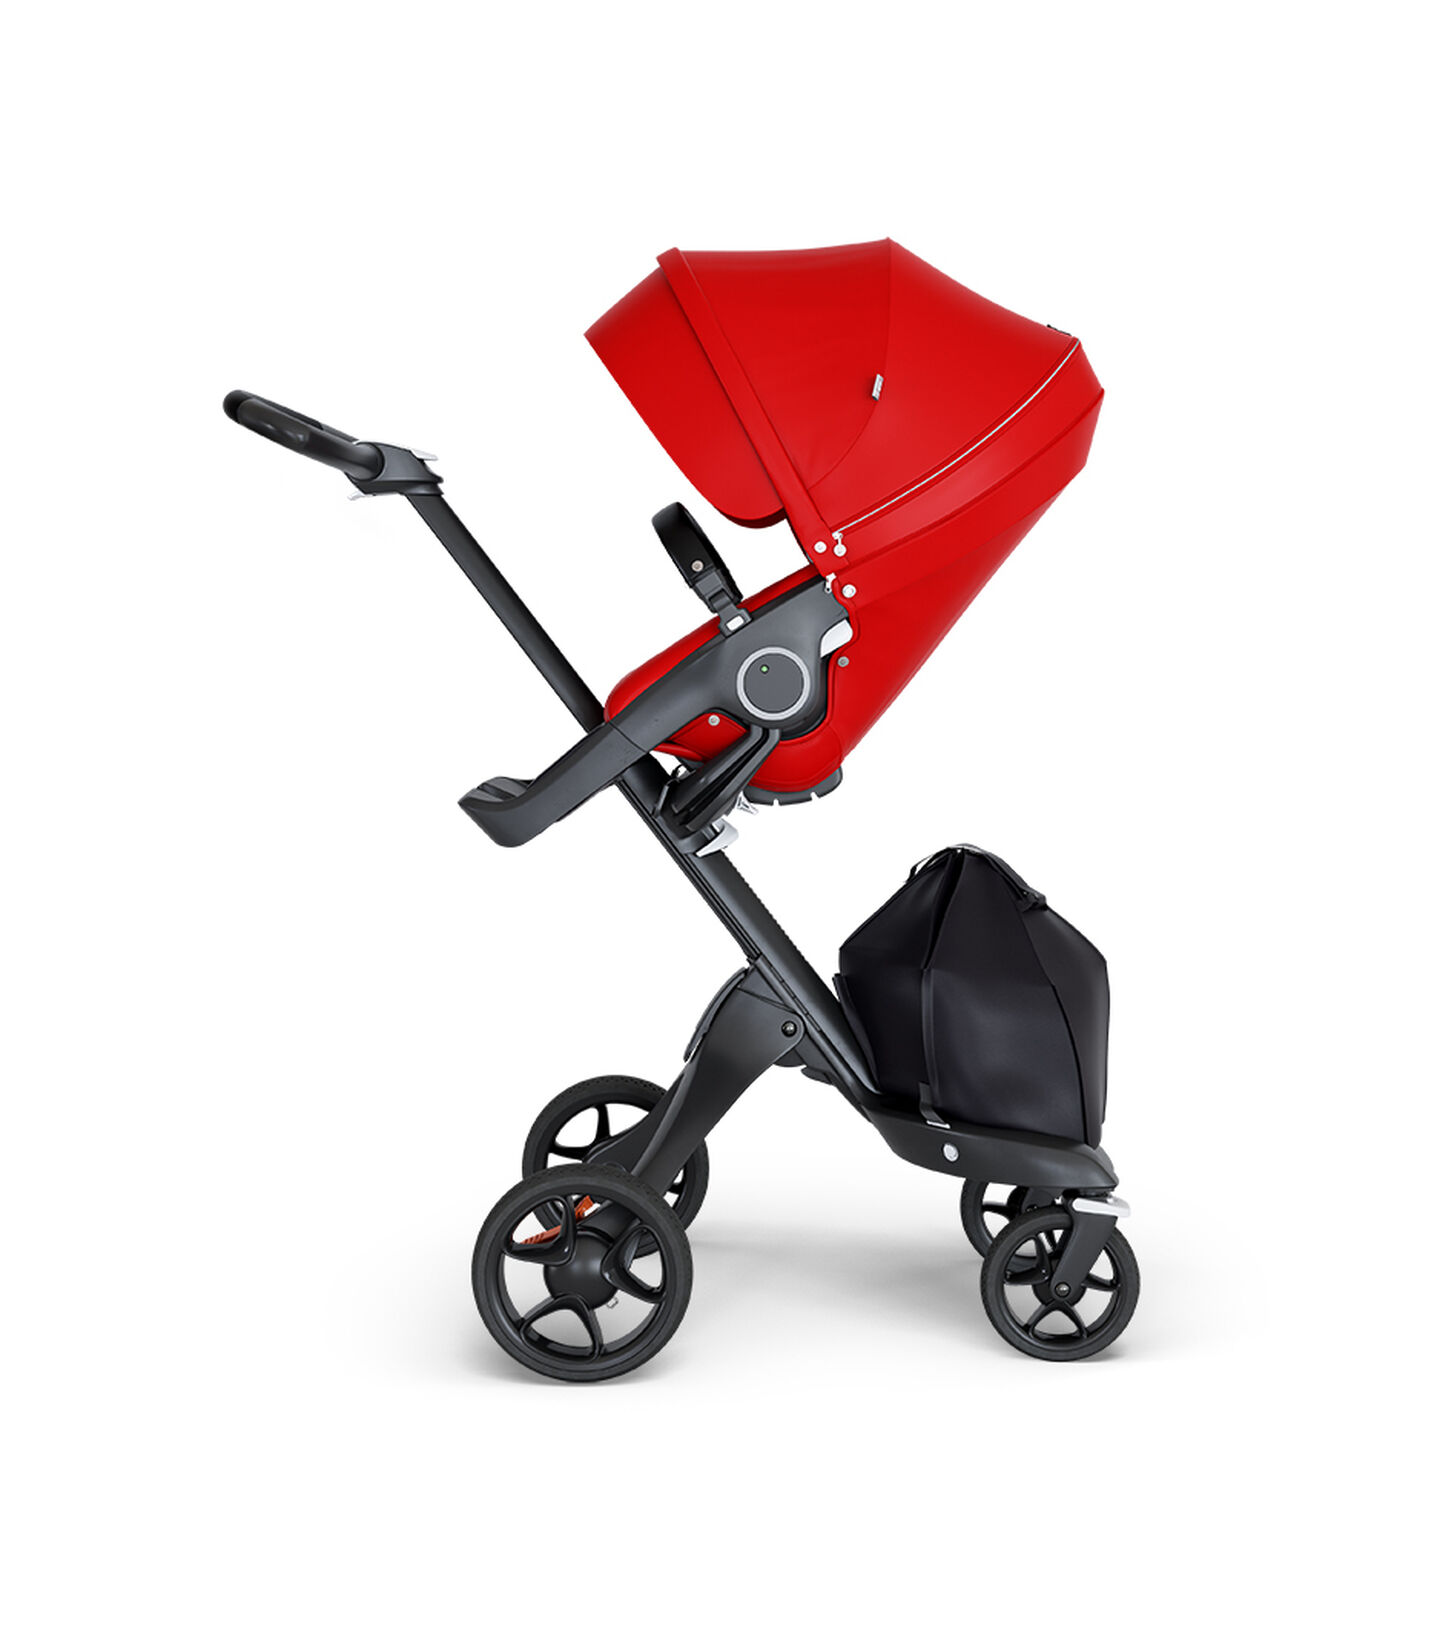 Stokke® Xplory® wtih Black Chassis and Leatherette Black handle. Stokke® Stroller Seat Red.